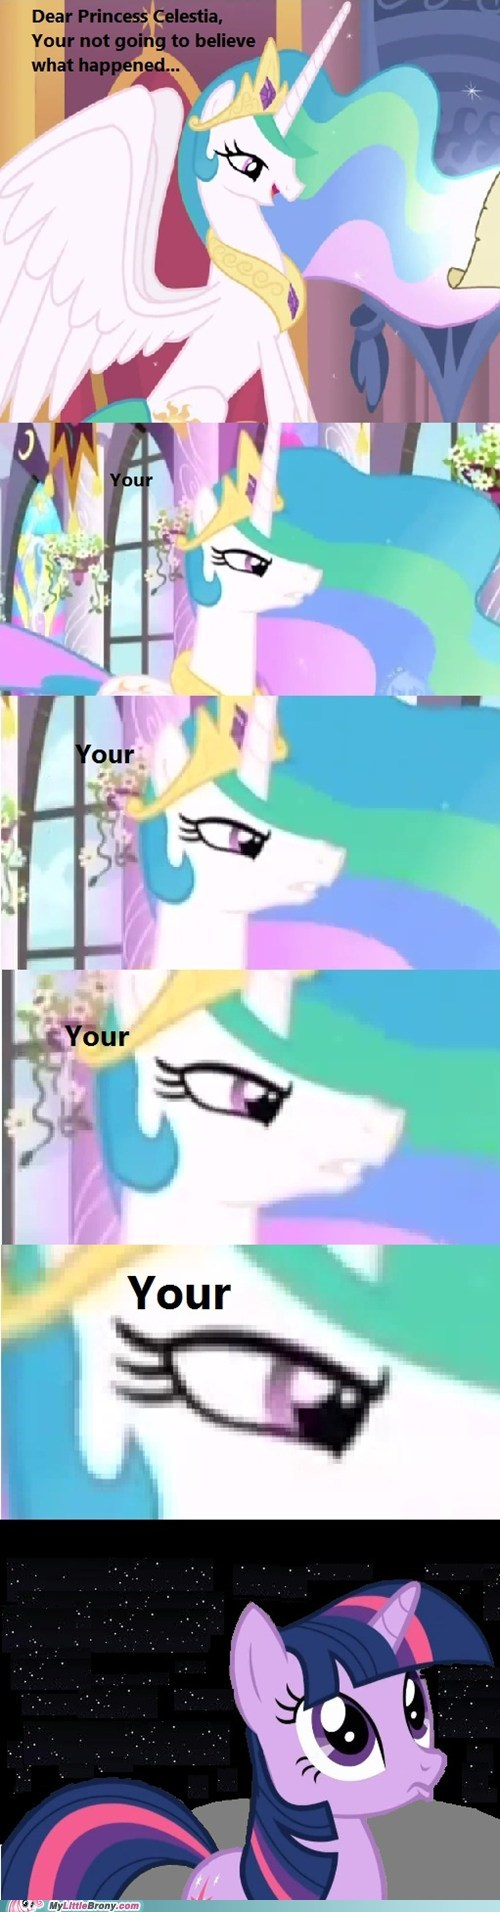 banished comics grammer letter to celestia to the moon your youre - 6006632448